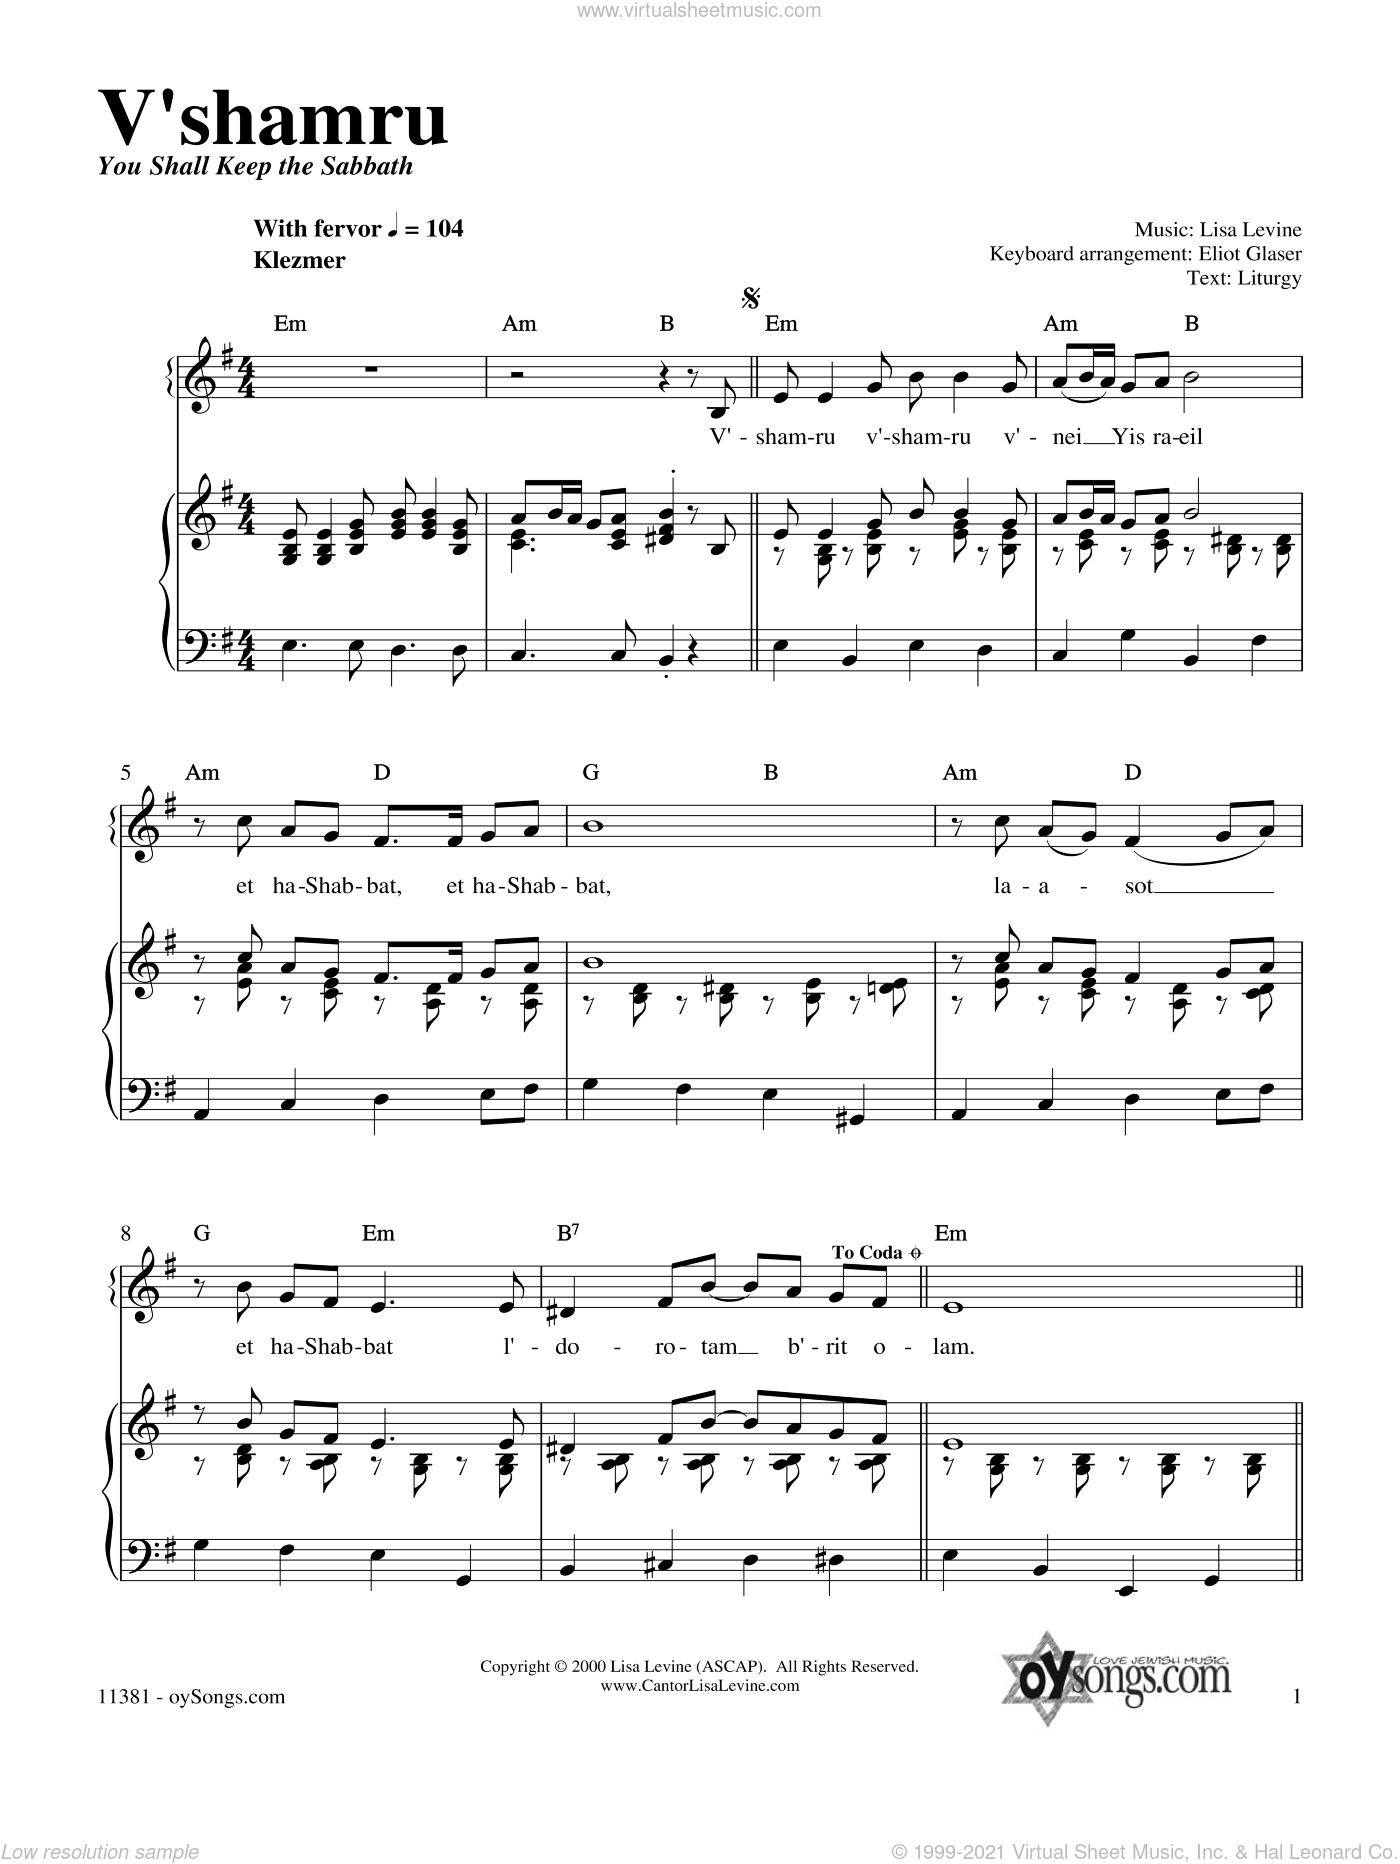 V'shamru sheet music for voice, piano or guitar by Lisa Levine